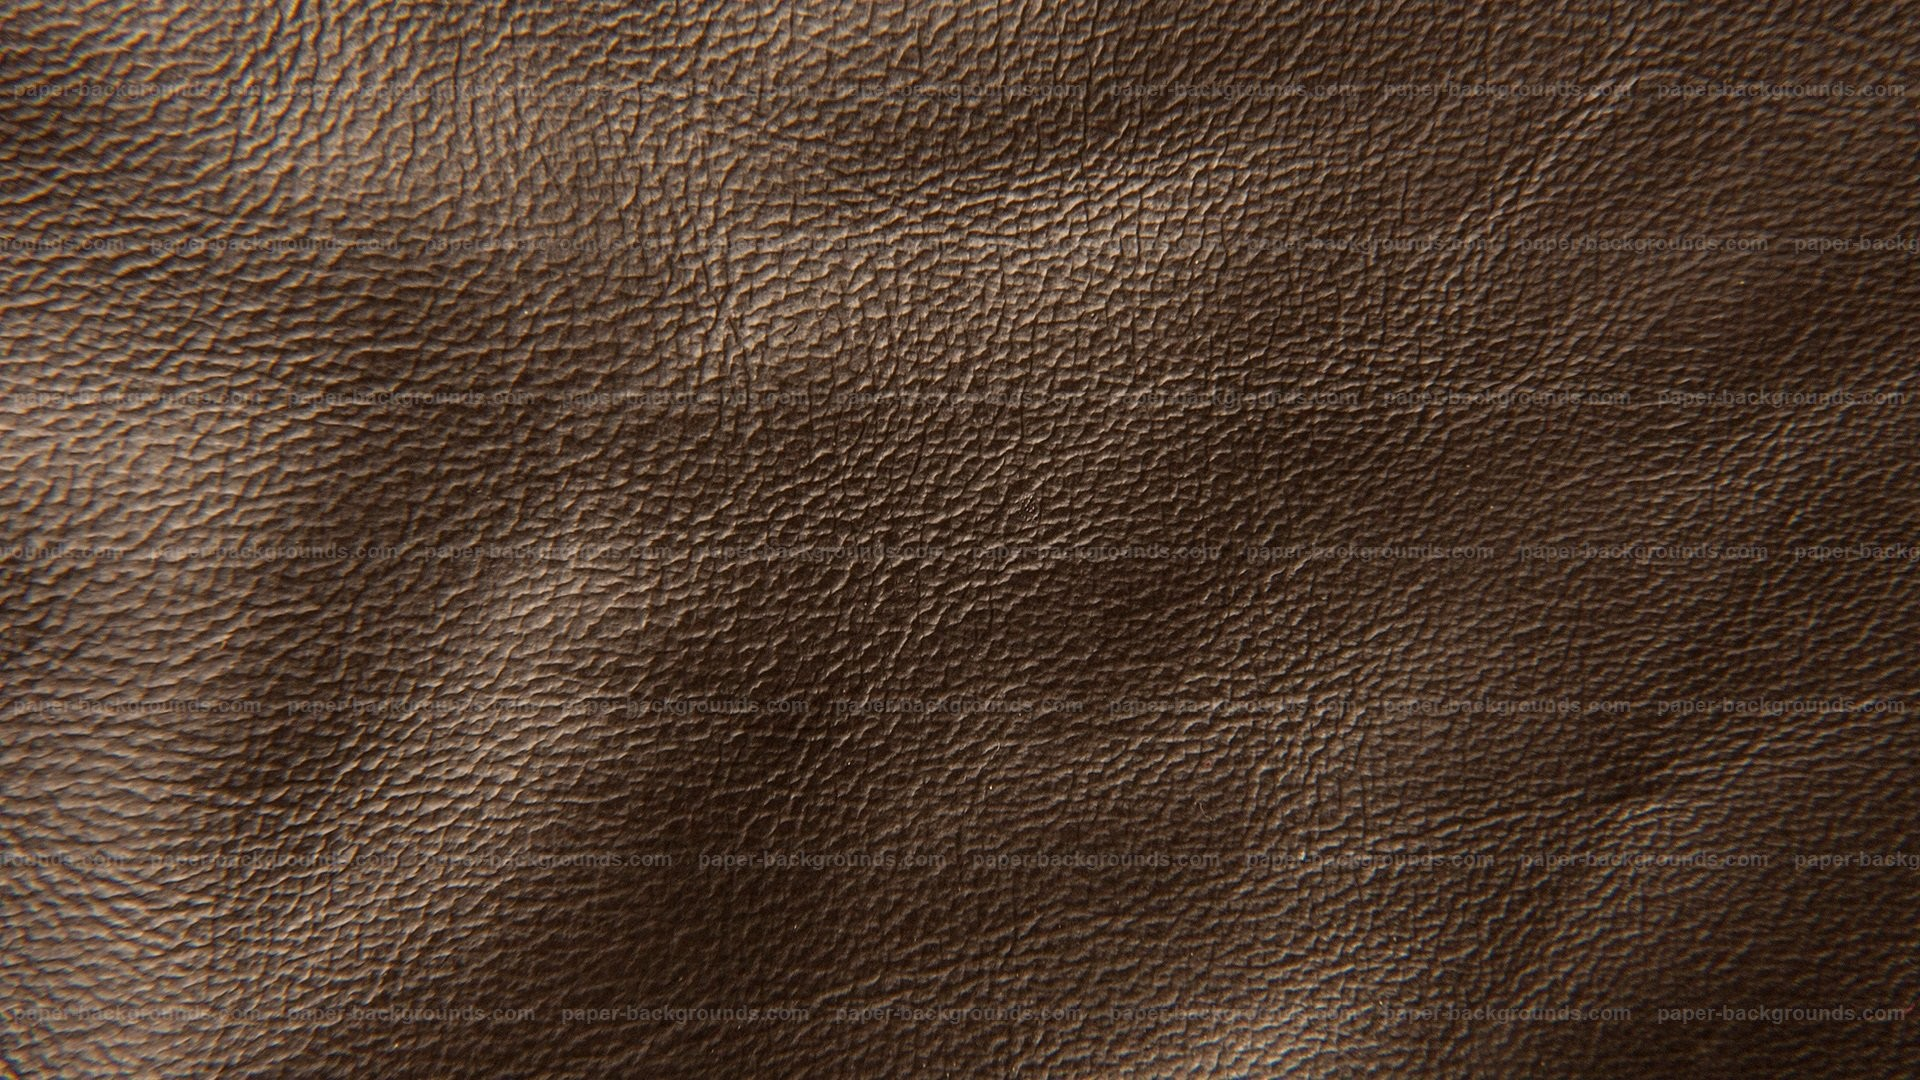 Texture Dark Textured Leather Brown Textureimages …